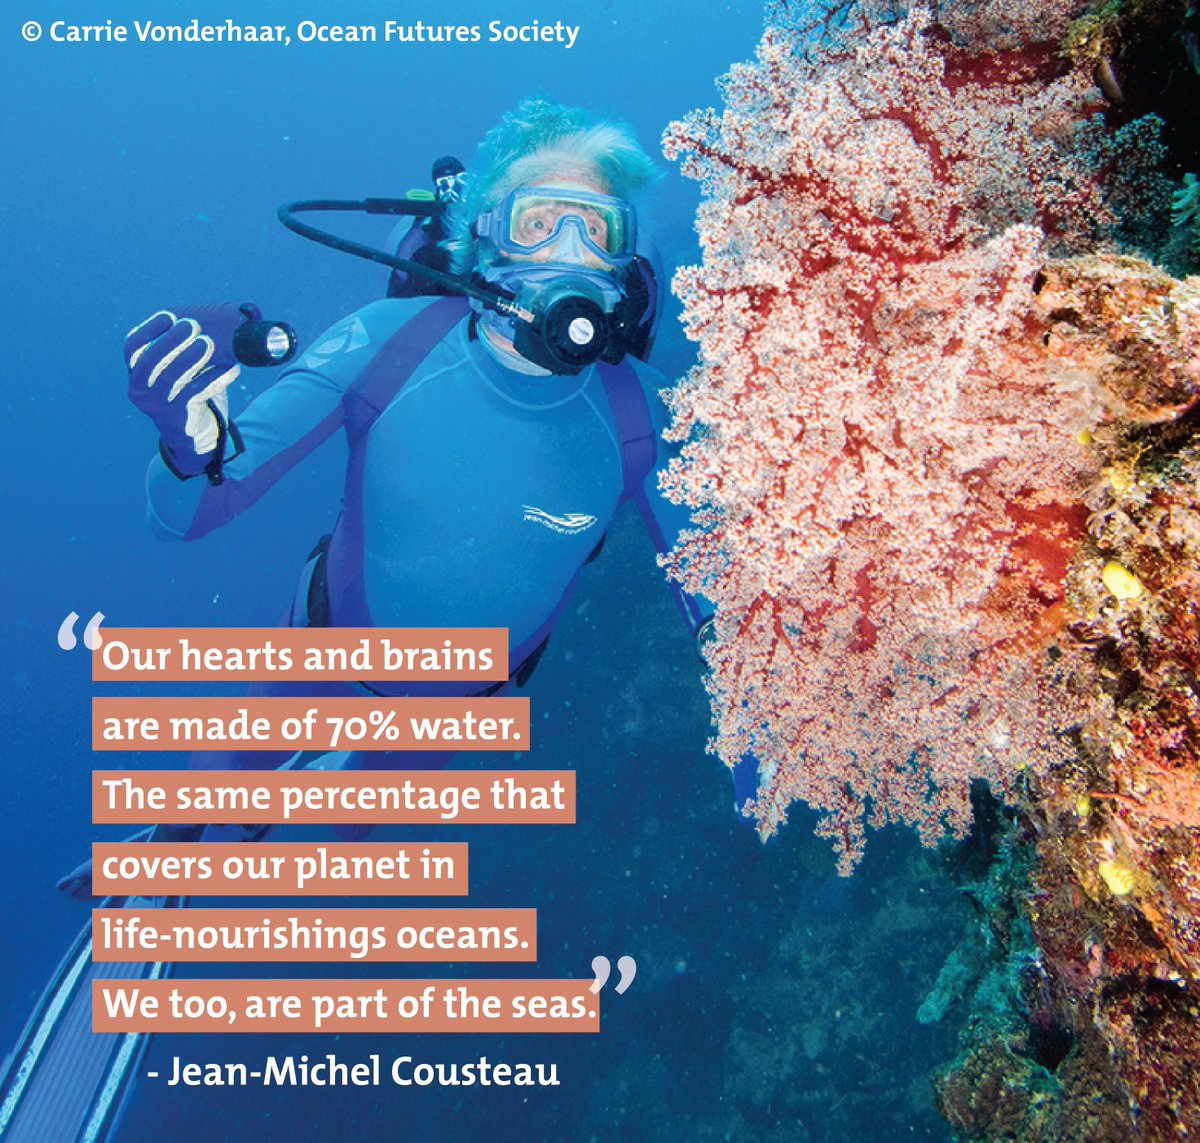 """""""Let us not forget that we are mostly #water. It is time to embrace our water planet as part of us."""" @JMCousteau https://t.co/DxVZEt3PEb"""